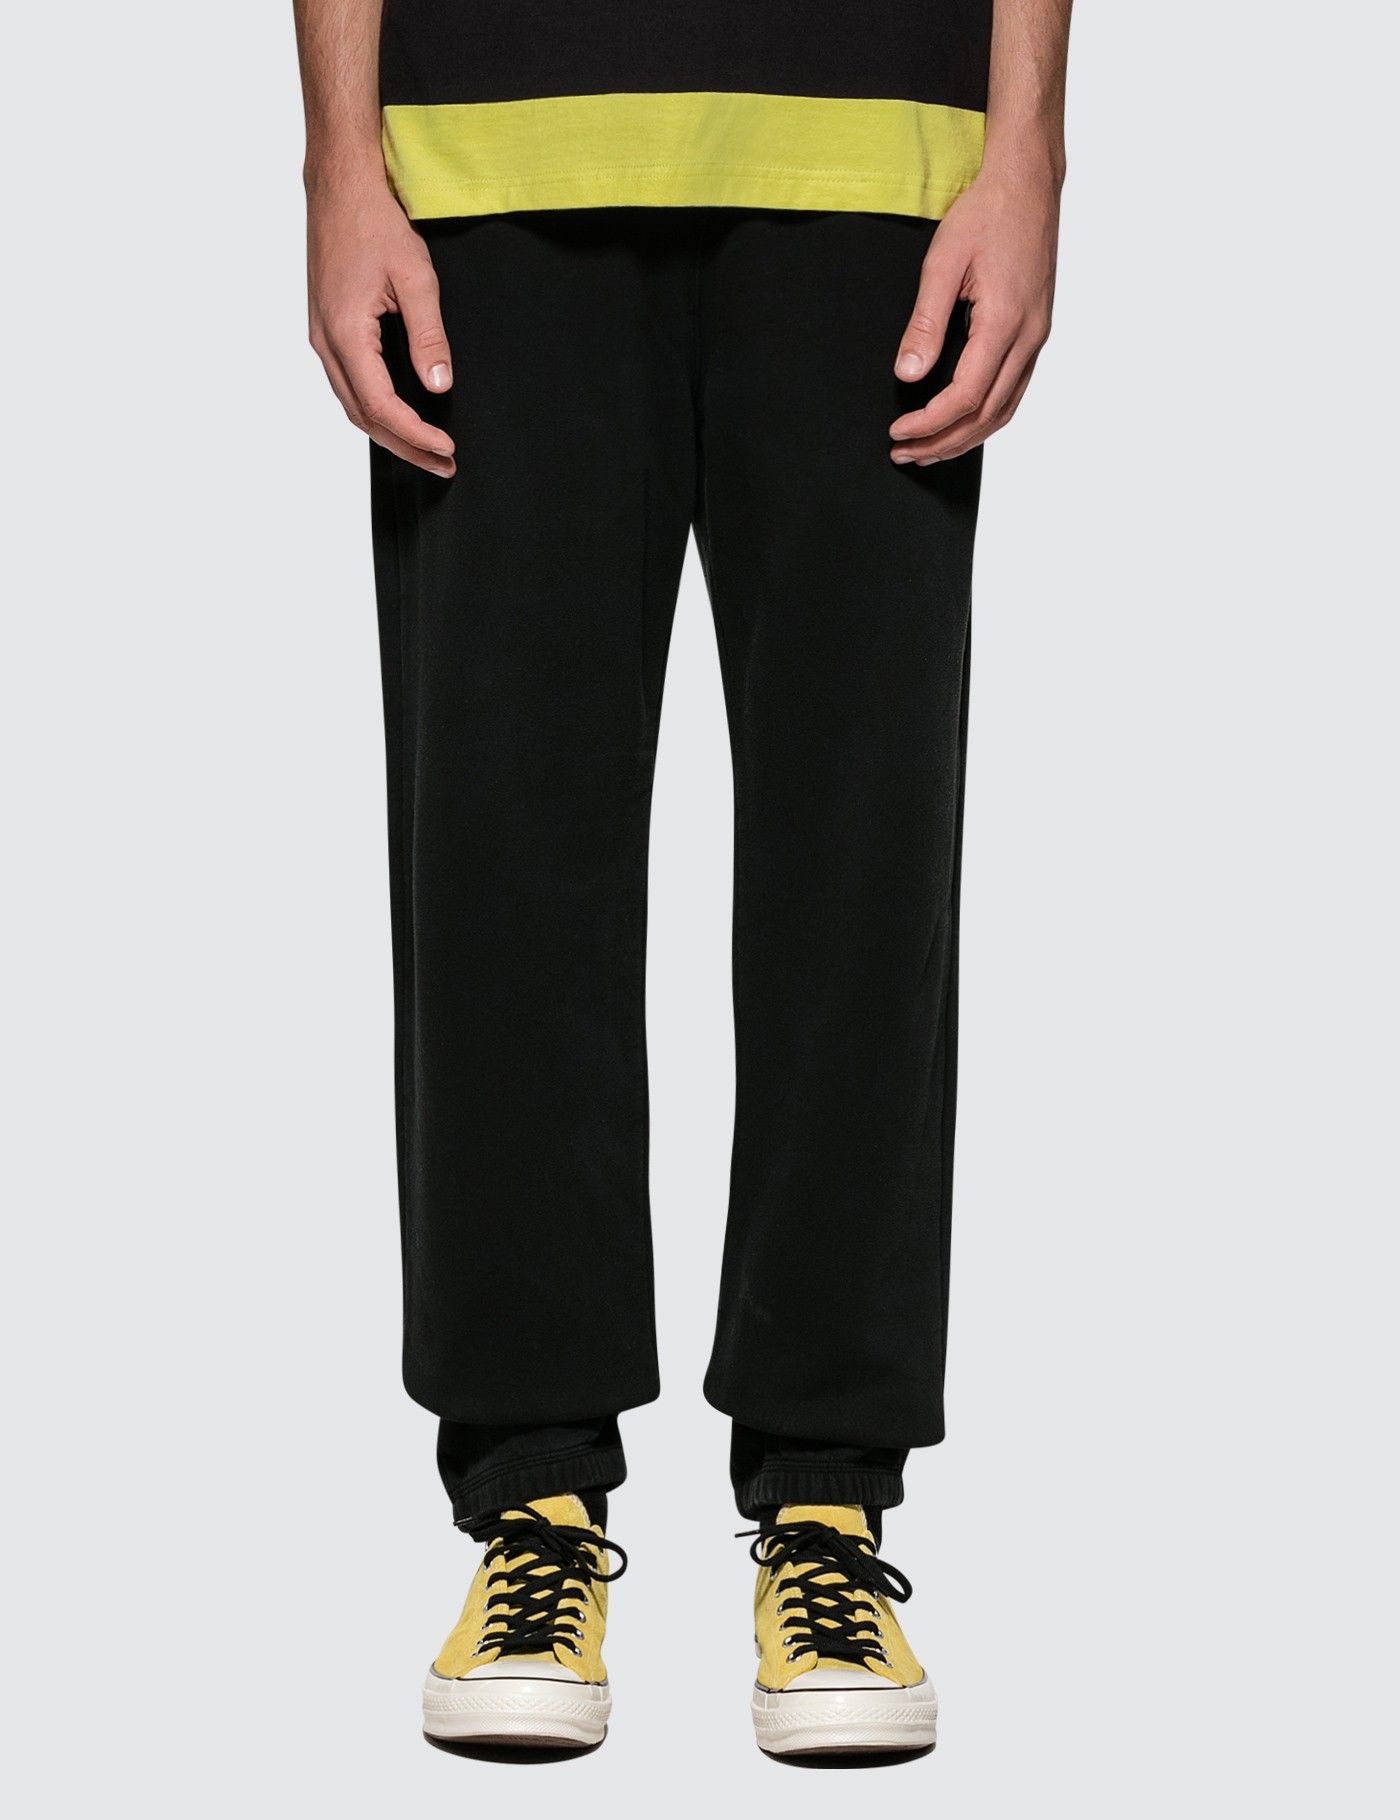 Stussy Stock Fleece Pants